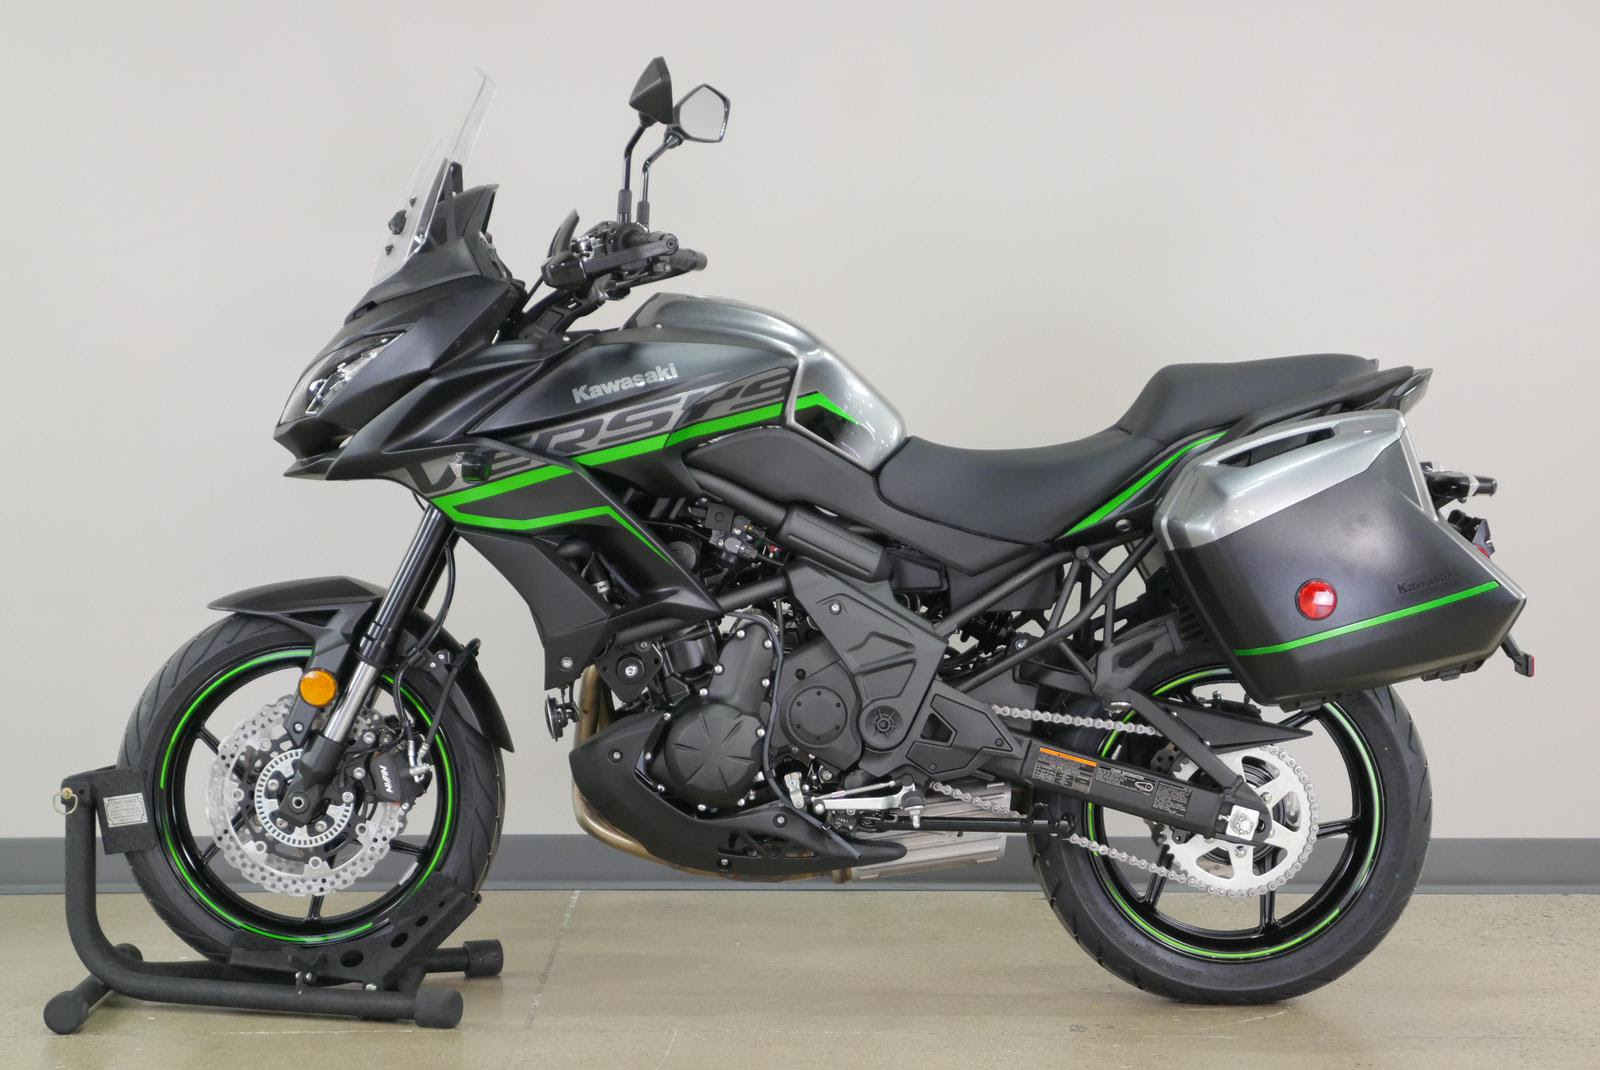 2019 Kawasaki Versys 650 Lt For Sale In Indianapolis In